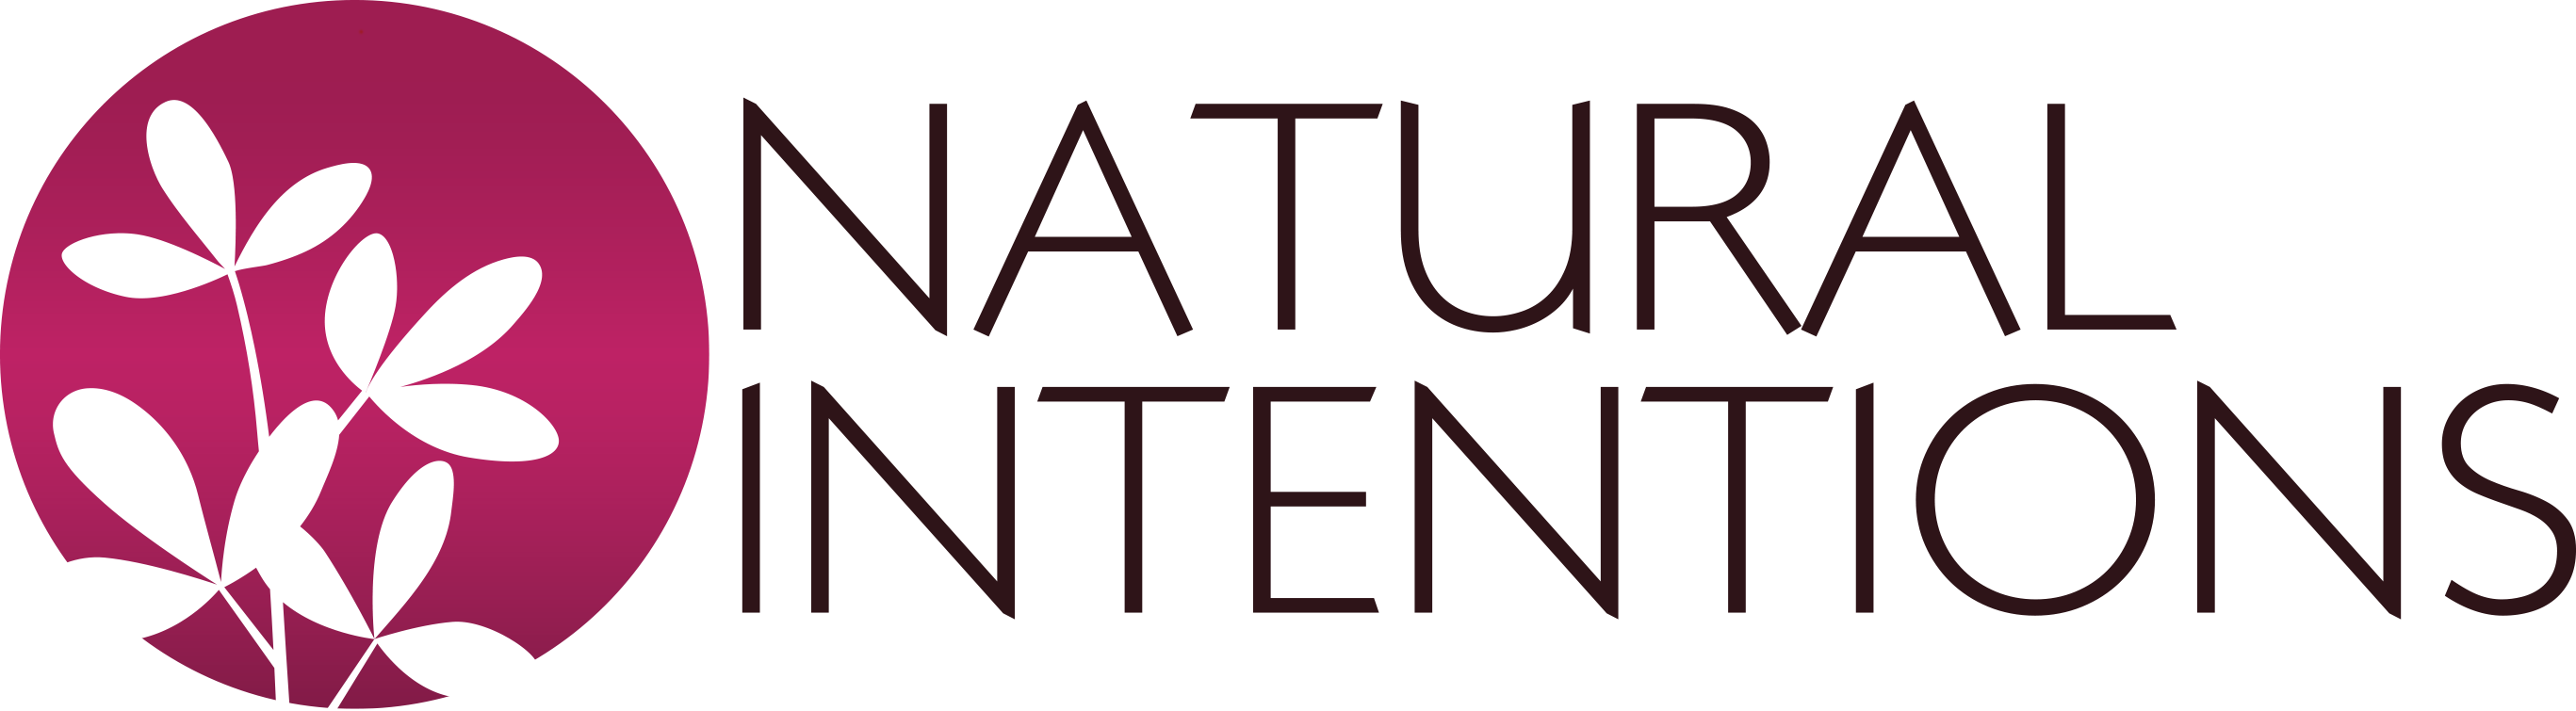 Natural Intentions Shop